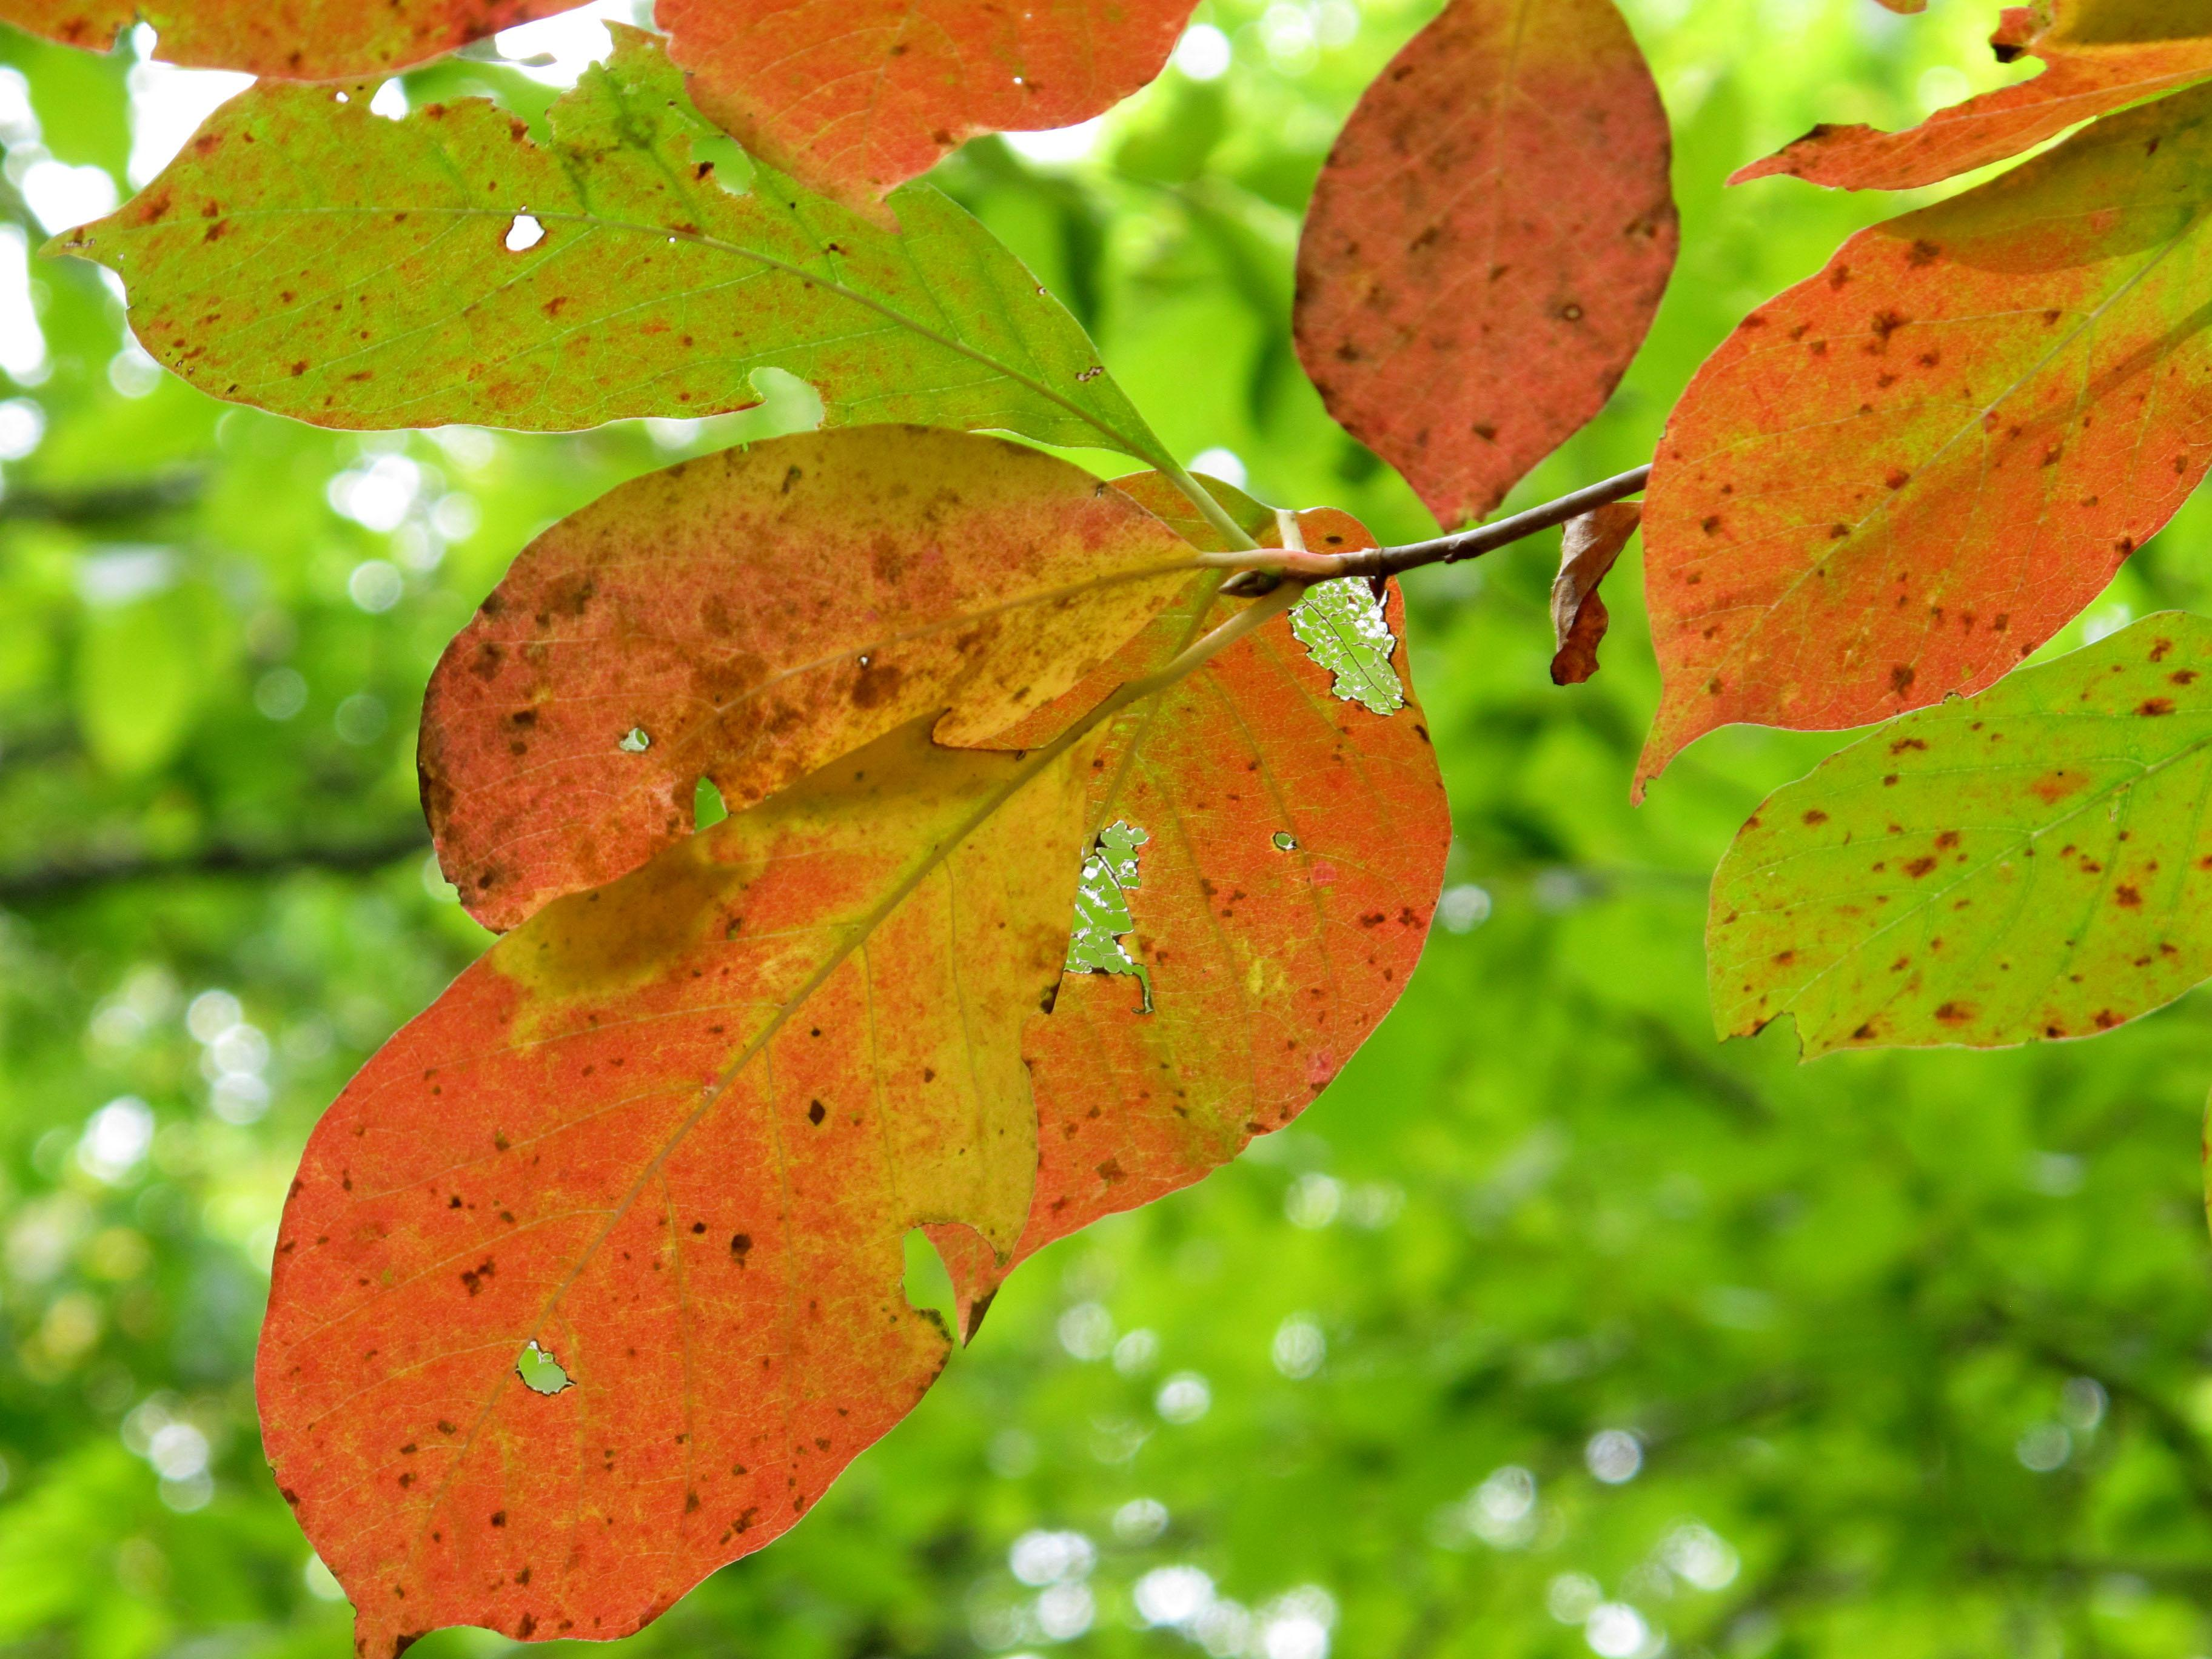 A tree displays red leaves on Sunday, Sept. 30, 2012, in Nashville, Tenn. As days get shorter and nights become chillier, the annual fall foliage show is getting under way in the Southern Appalachians. (AP Photo/Teresa Wasson)